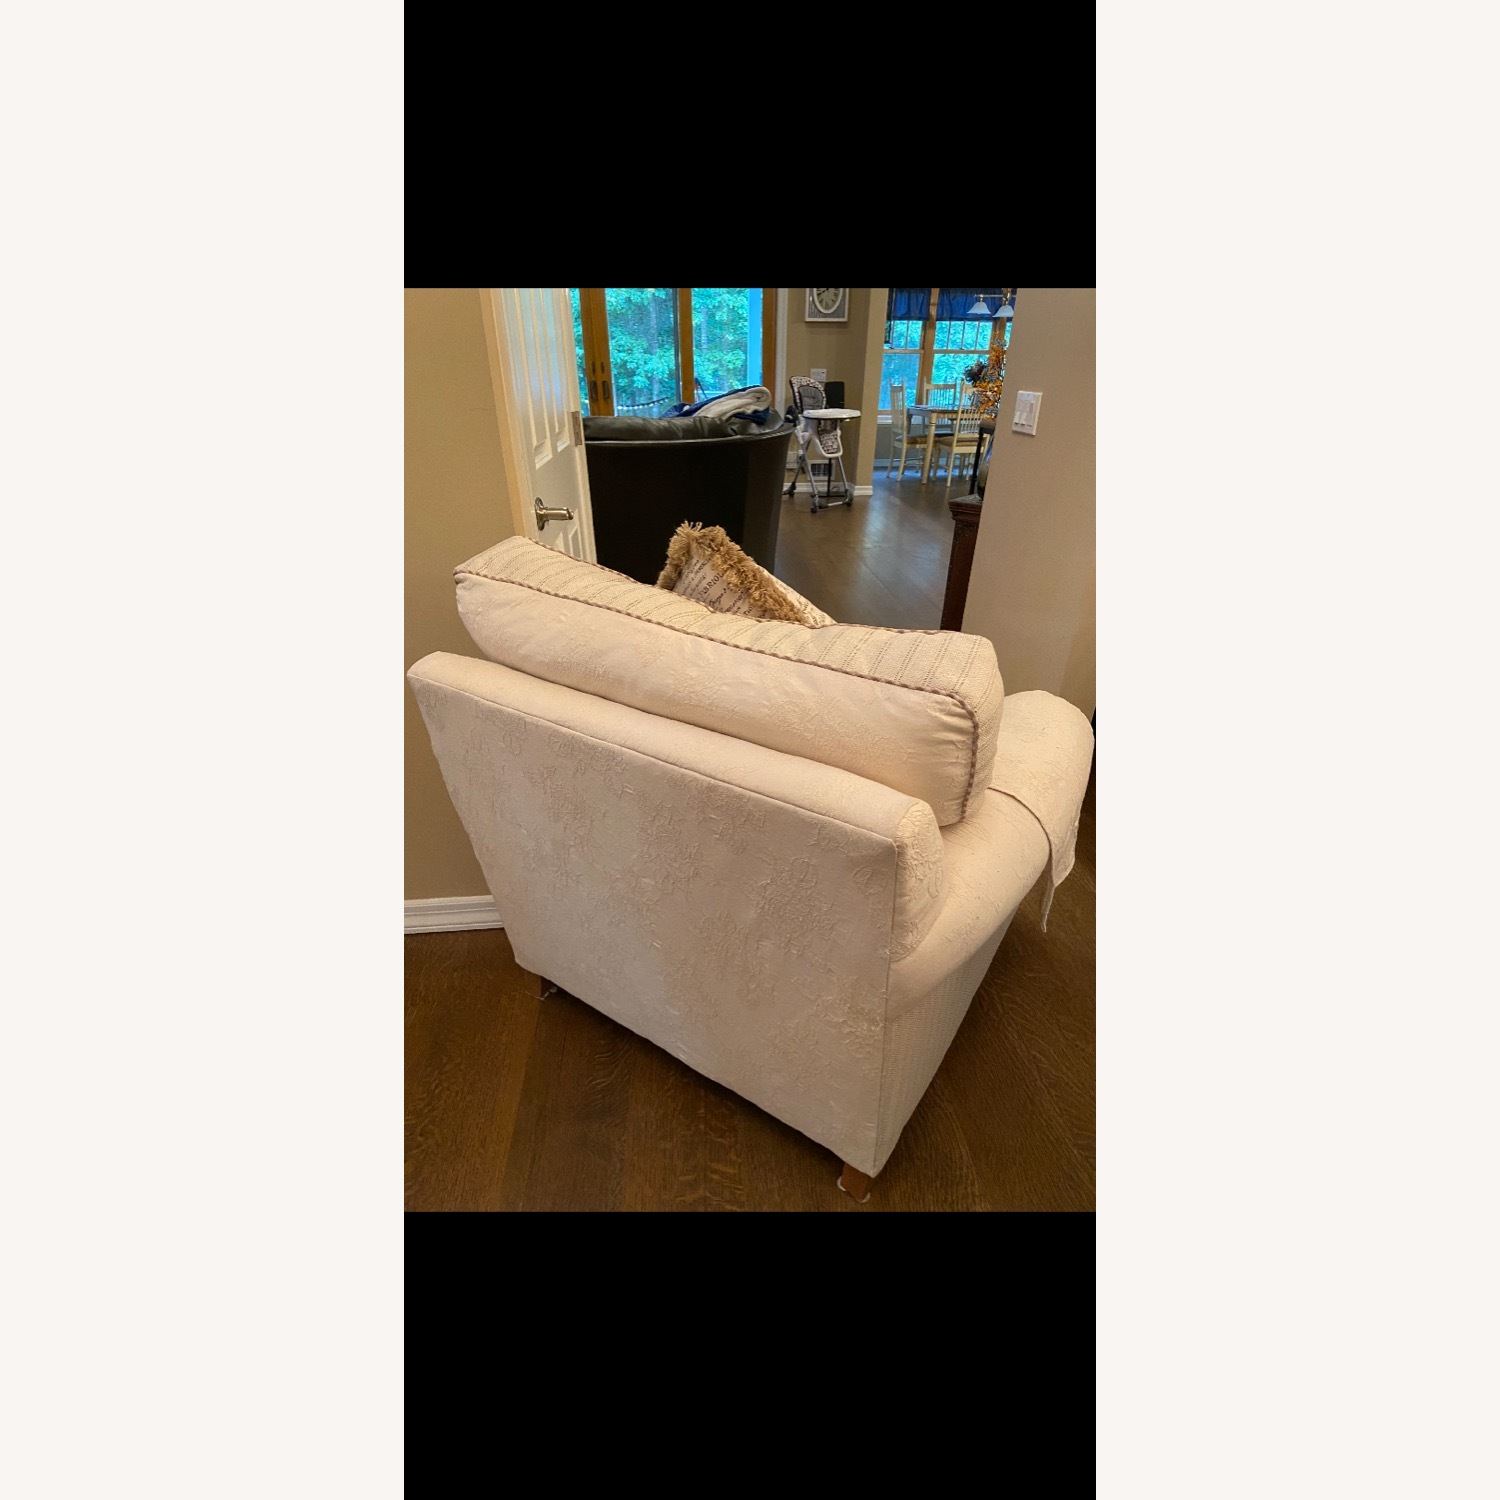 Kindel Furniture Accent Chair - image-2